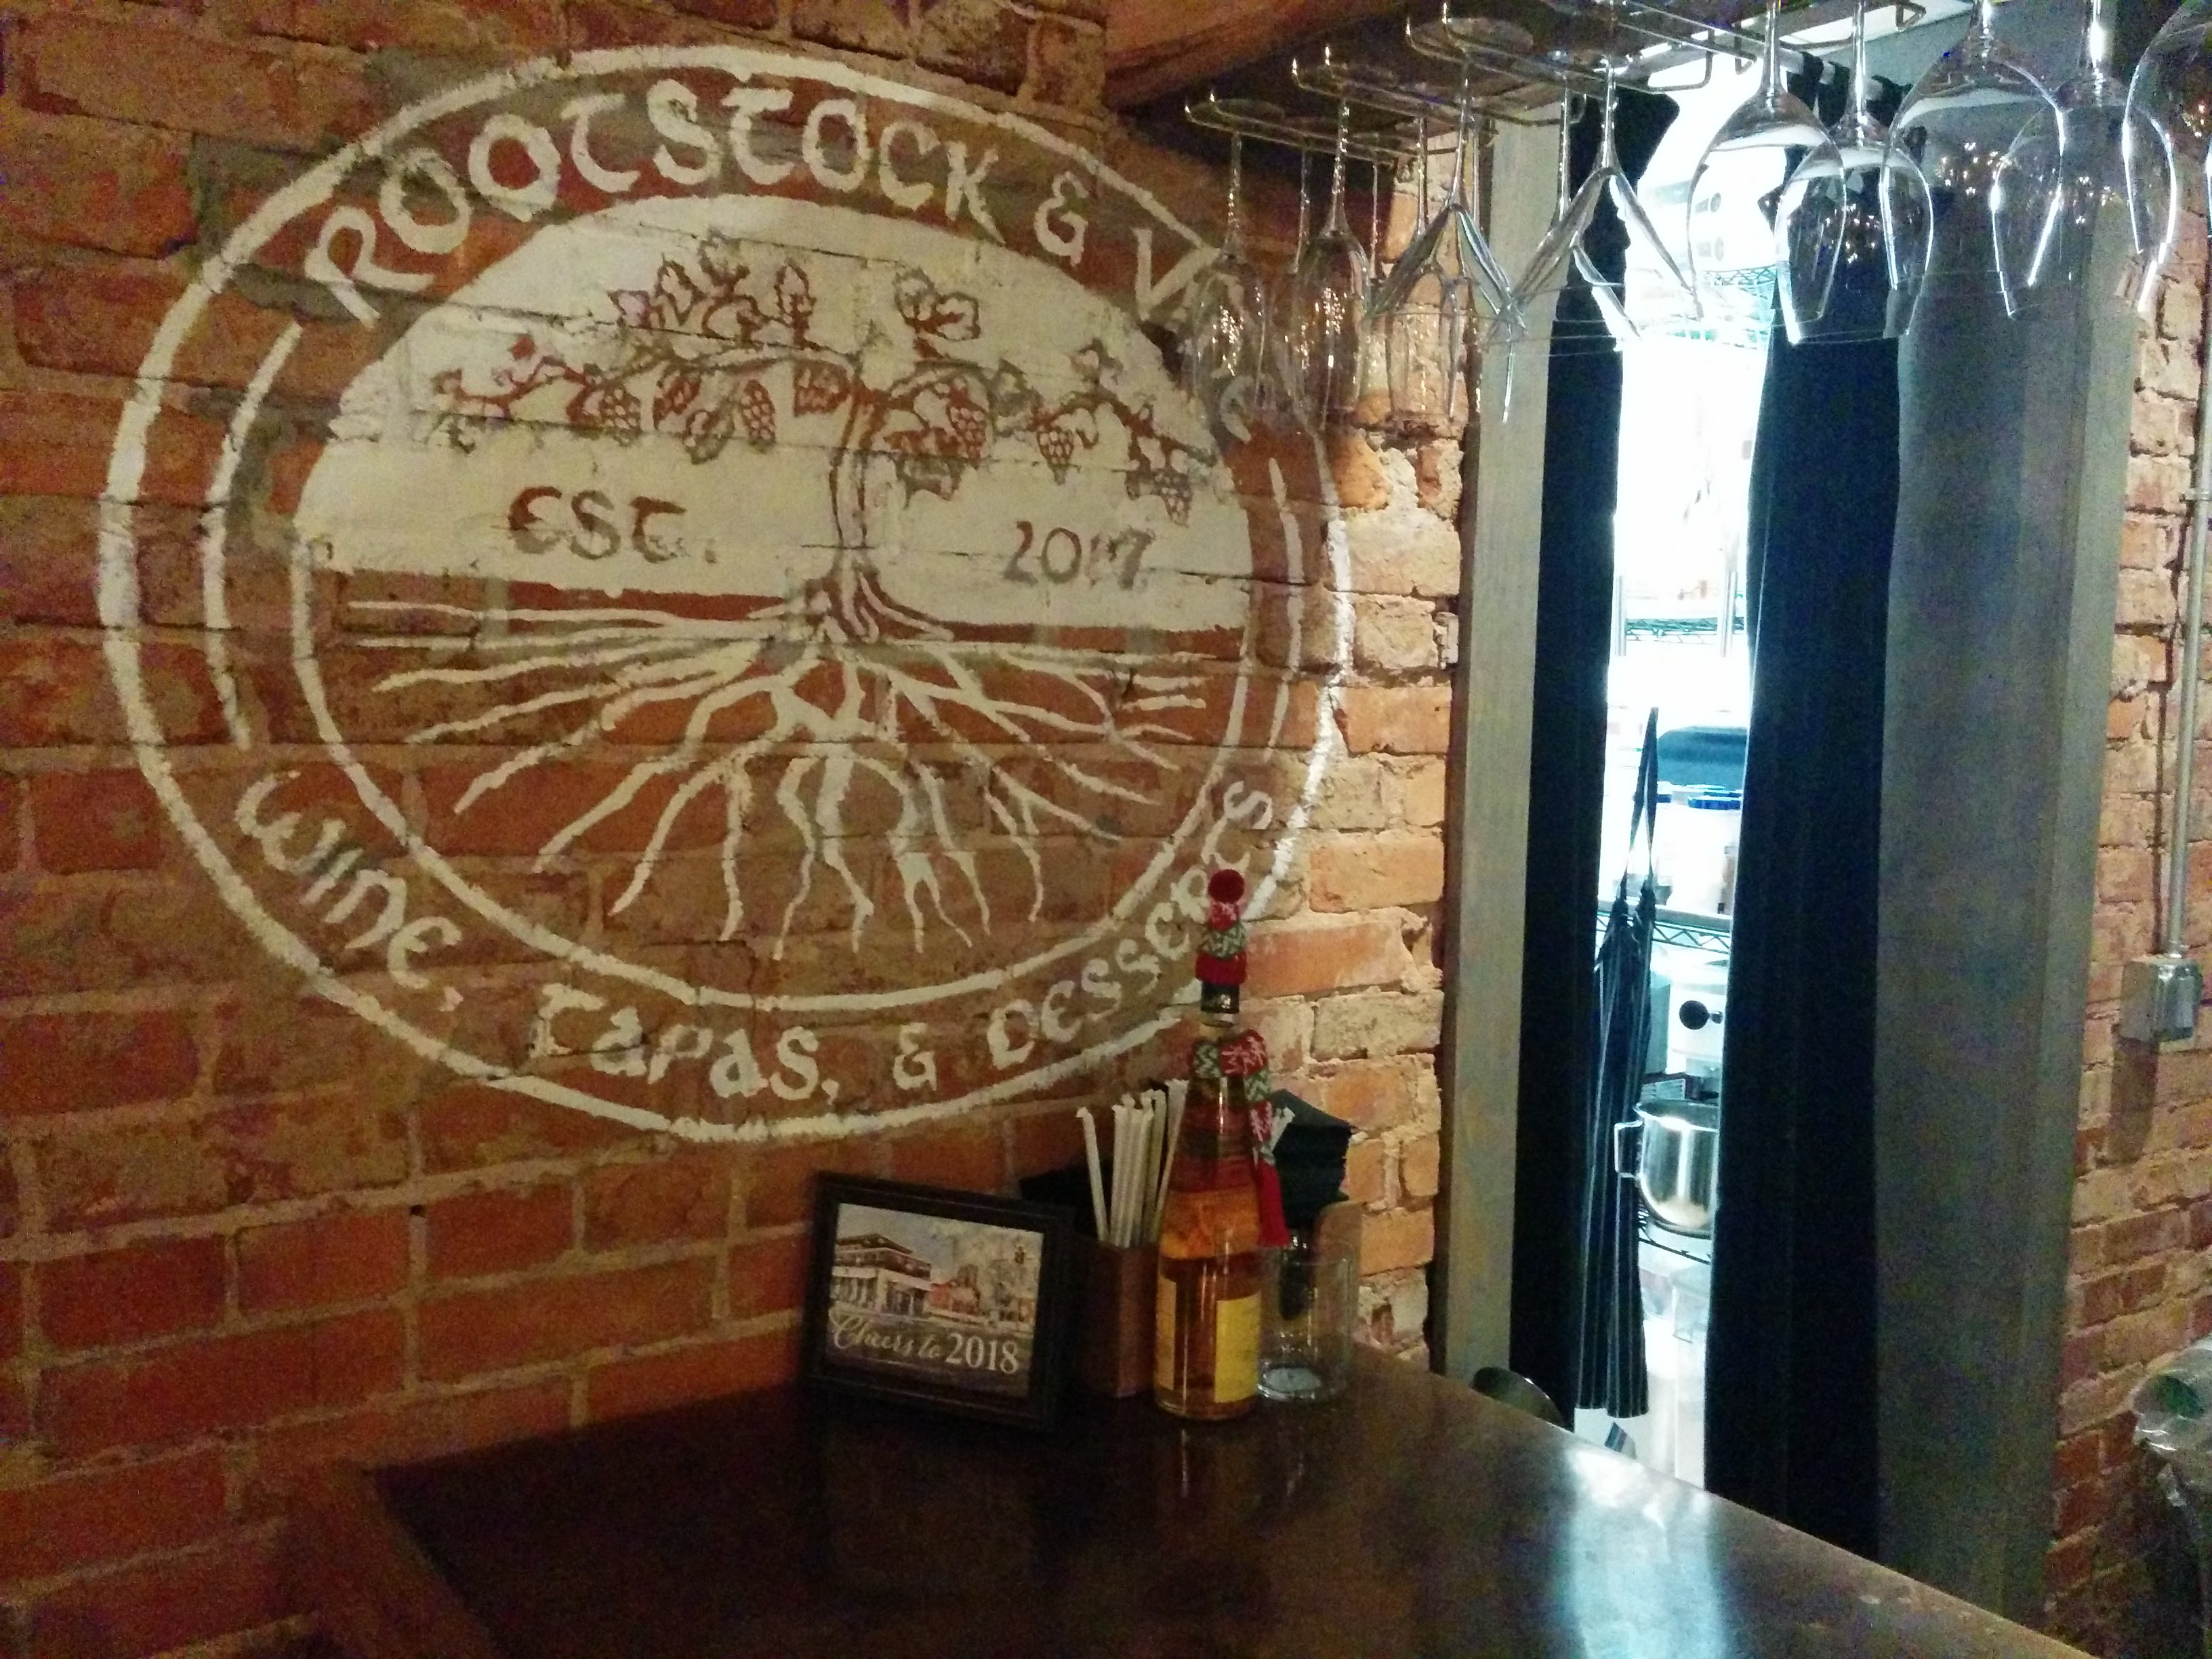 Rootstock and Vine brick wall logo